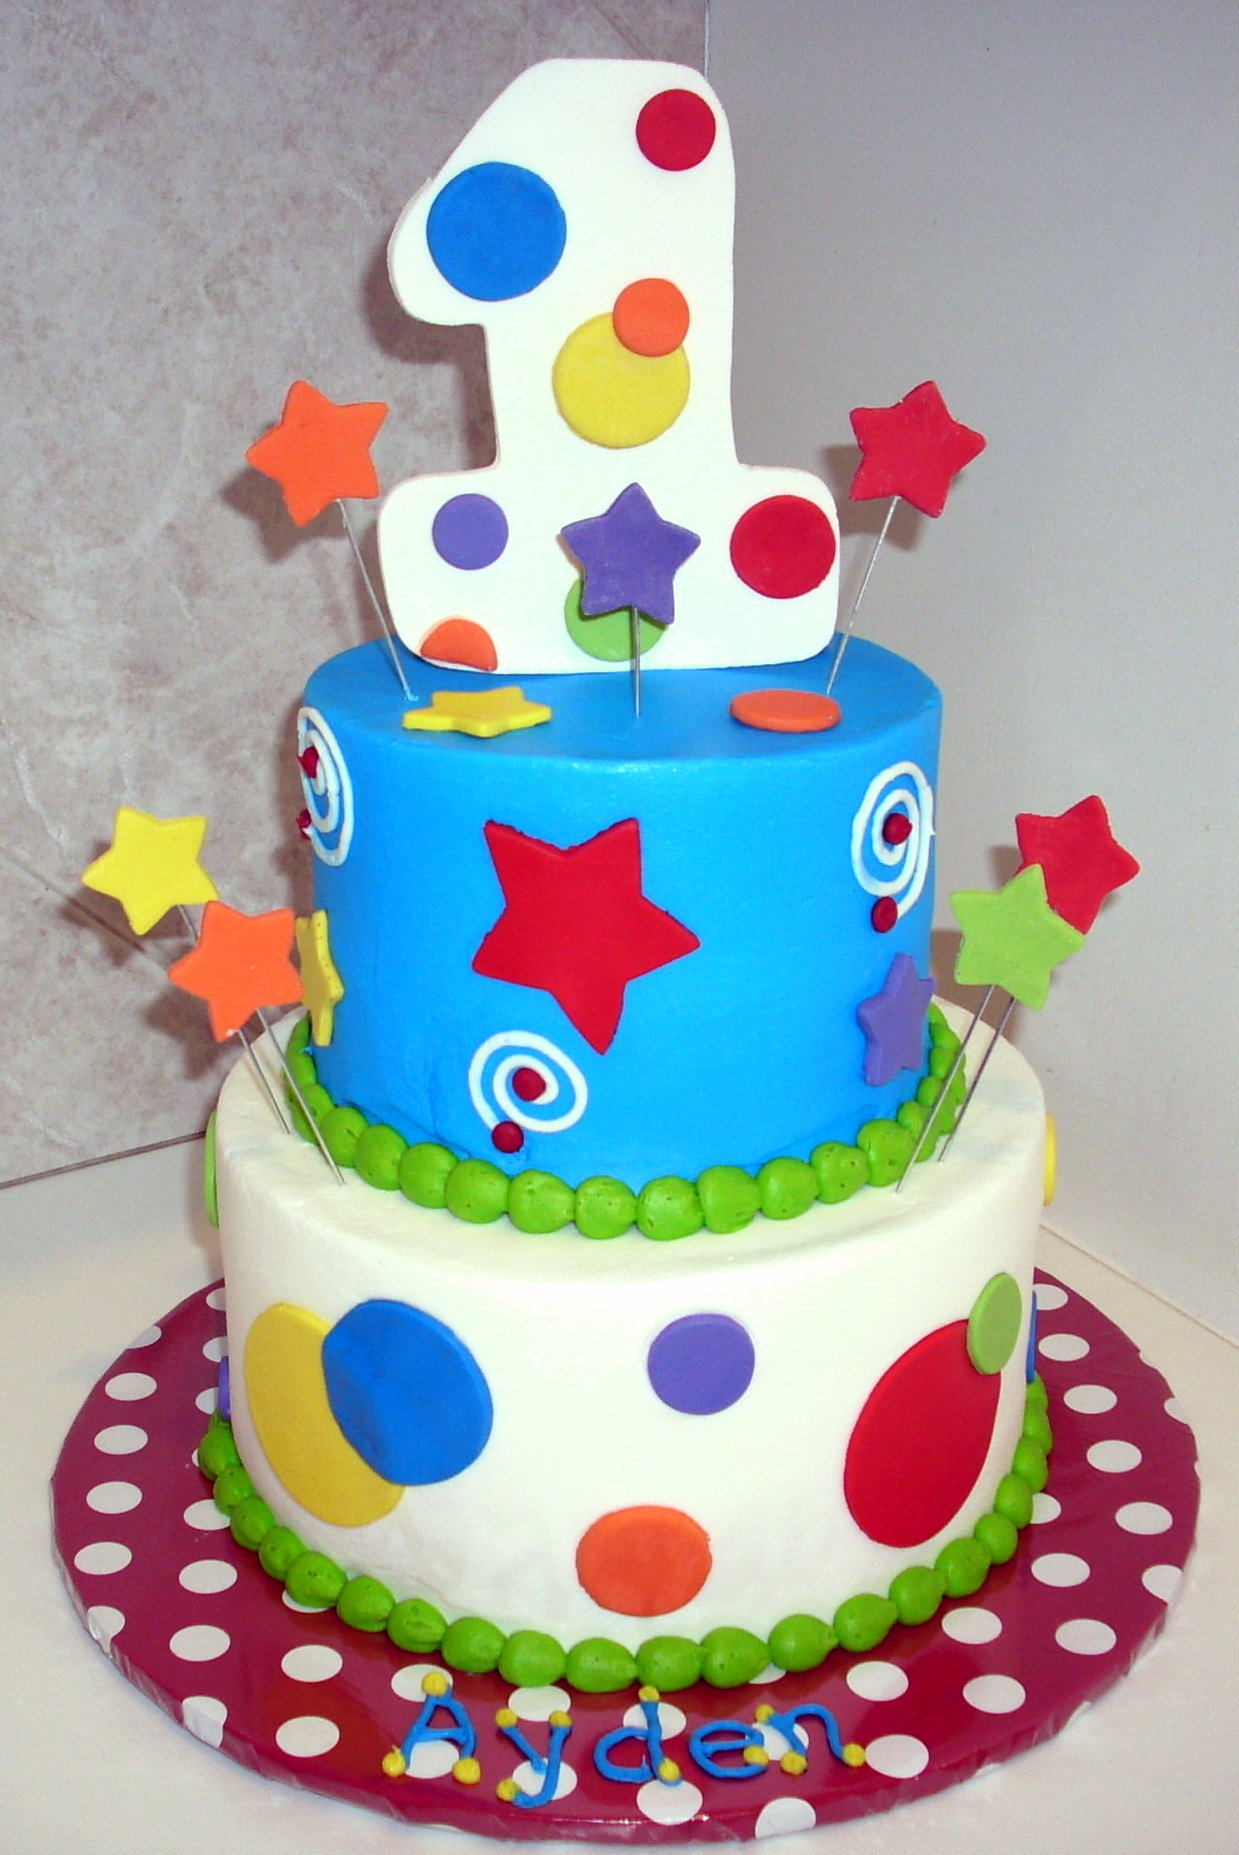 Birthday Cakes Images Beautiful For